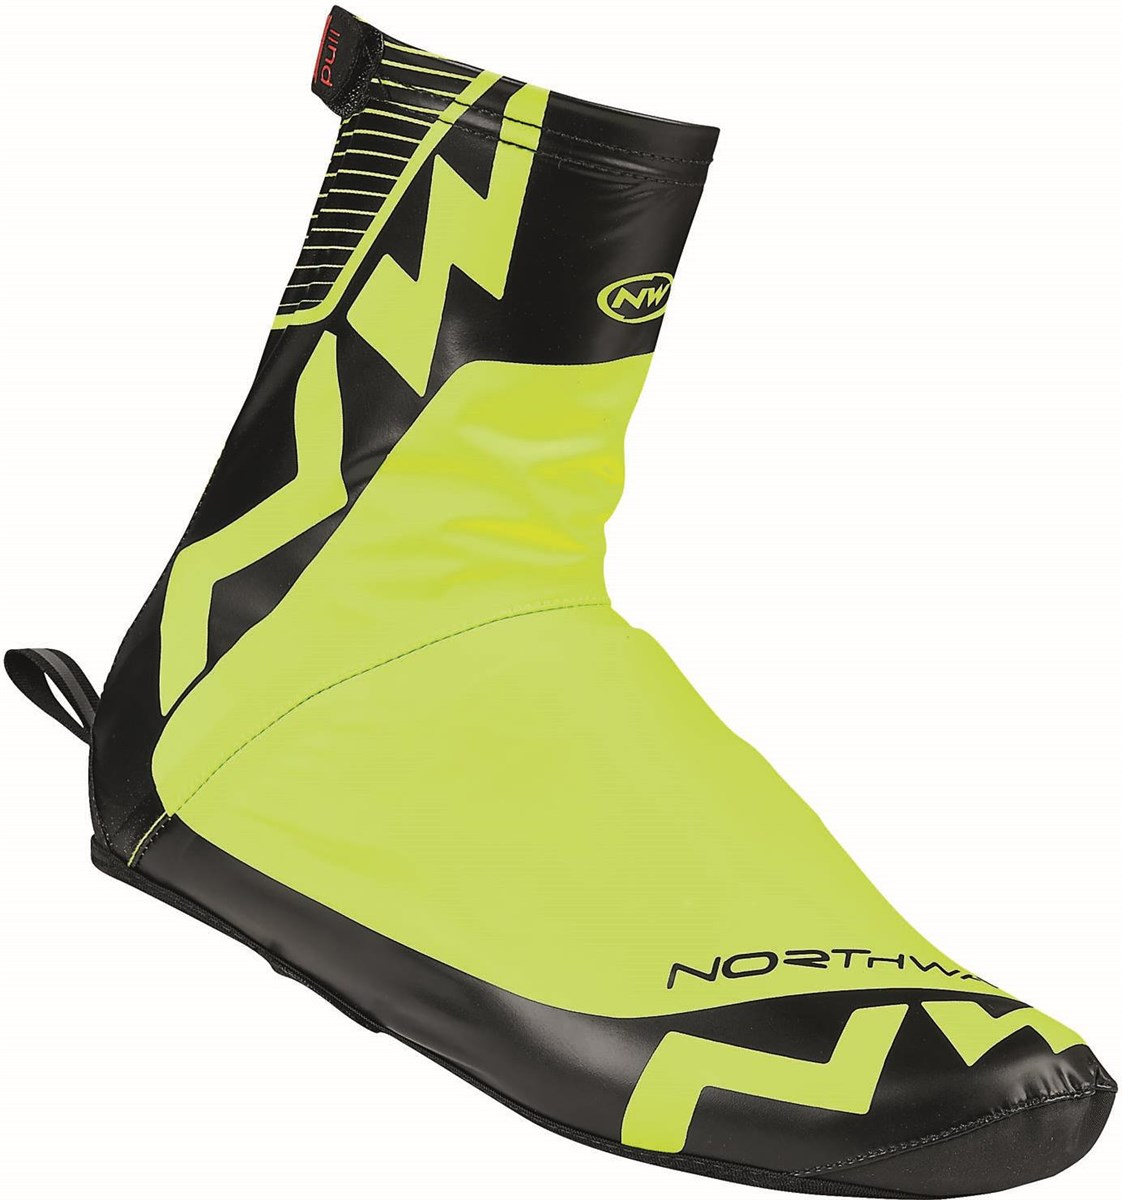 Northwave Acqua Summer Shoe Covers   shoecovers_clothes